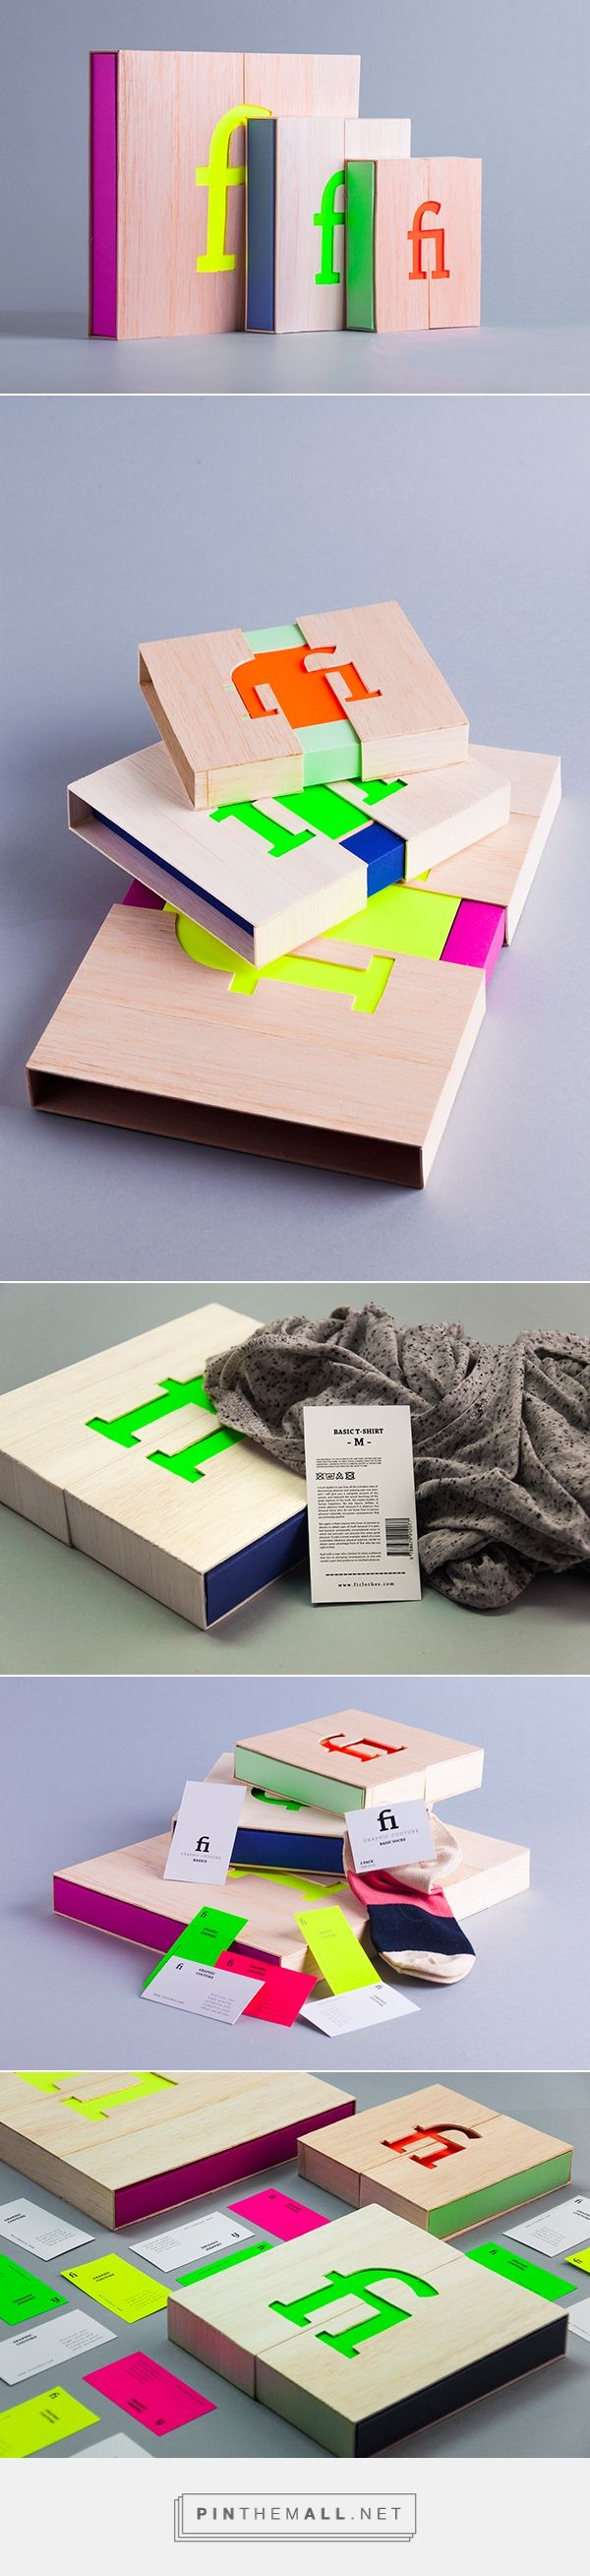 Fi Clothing on Behance by Demecs Fanni - created #packaging via http://pinthemall.net